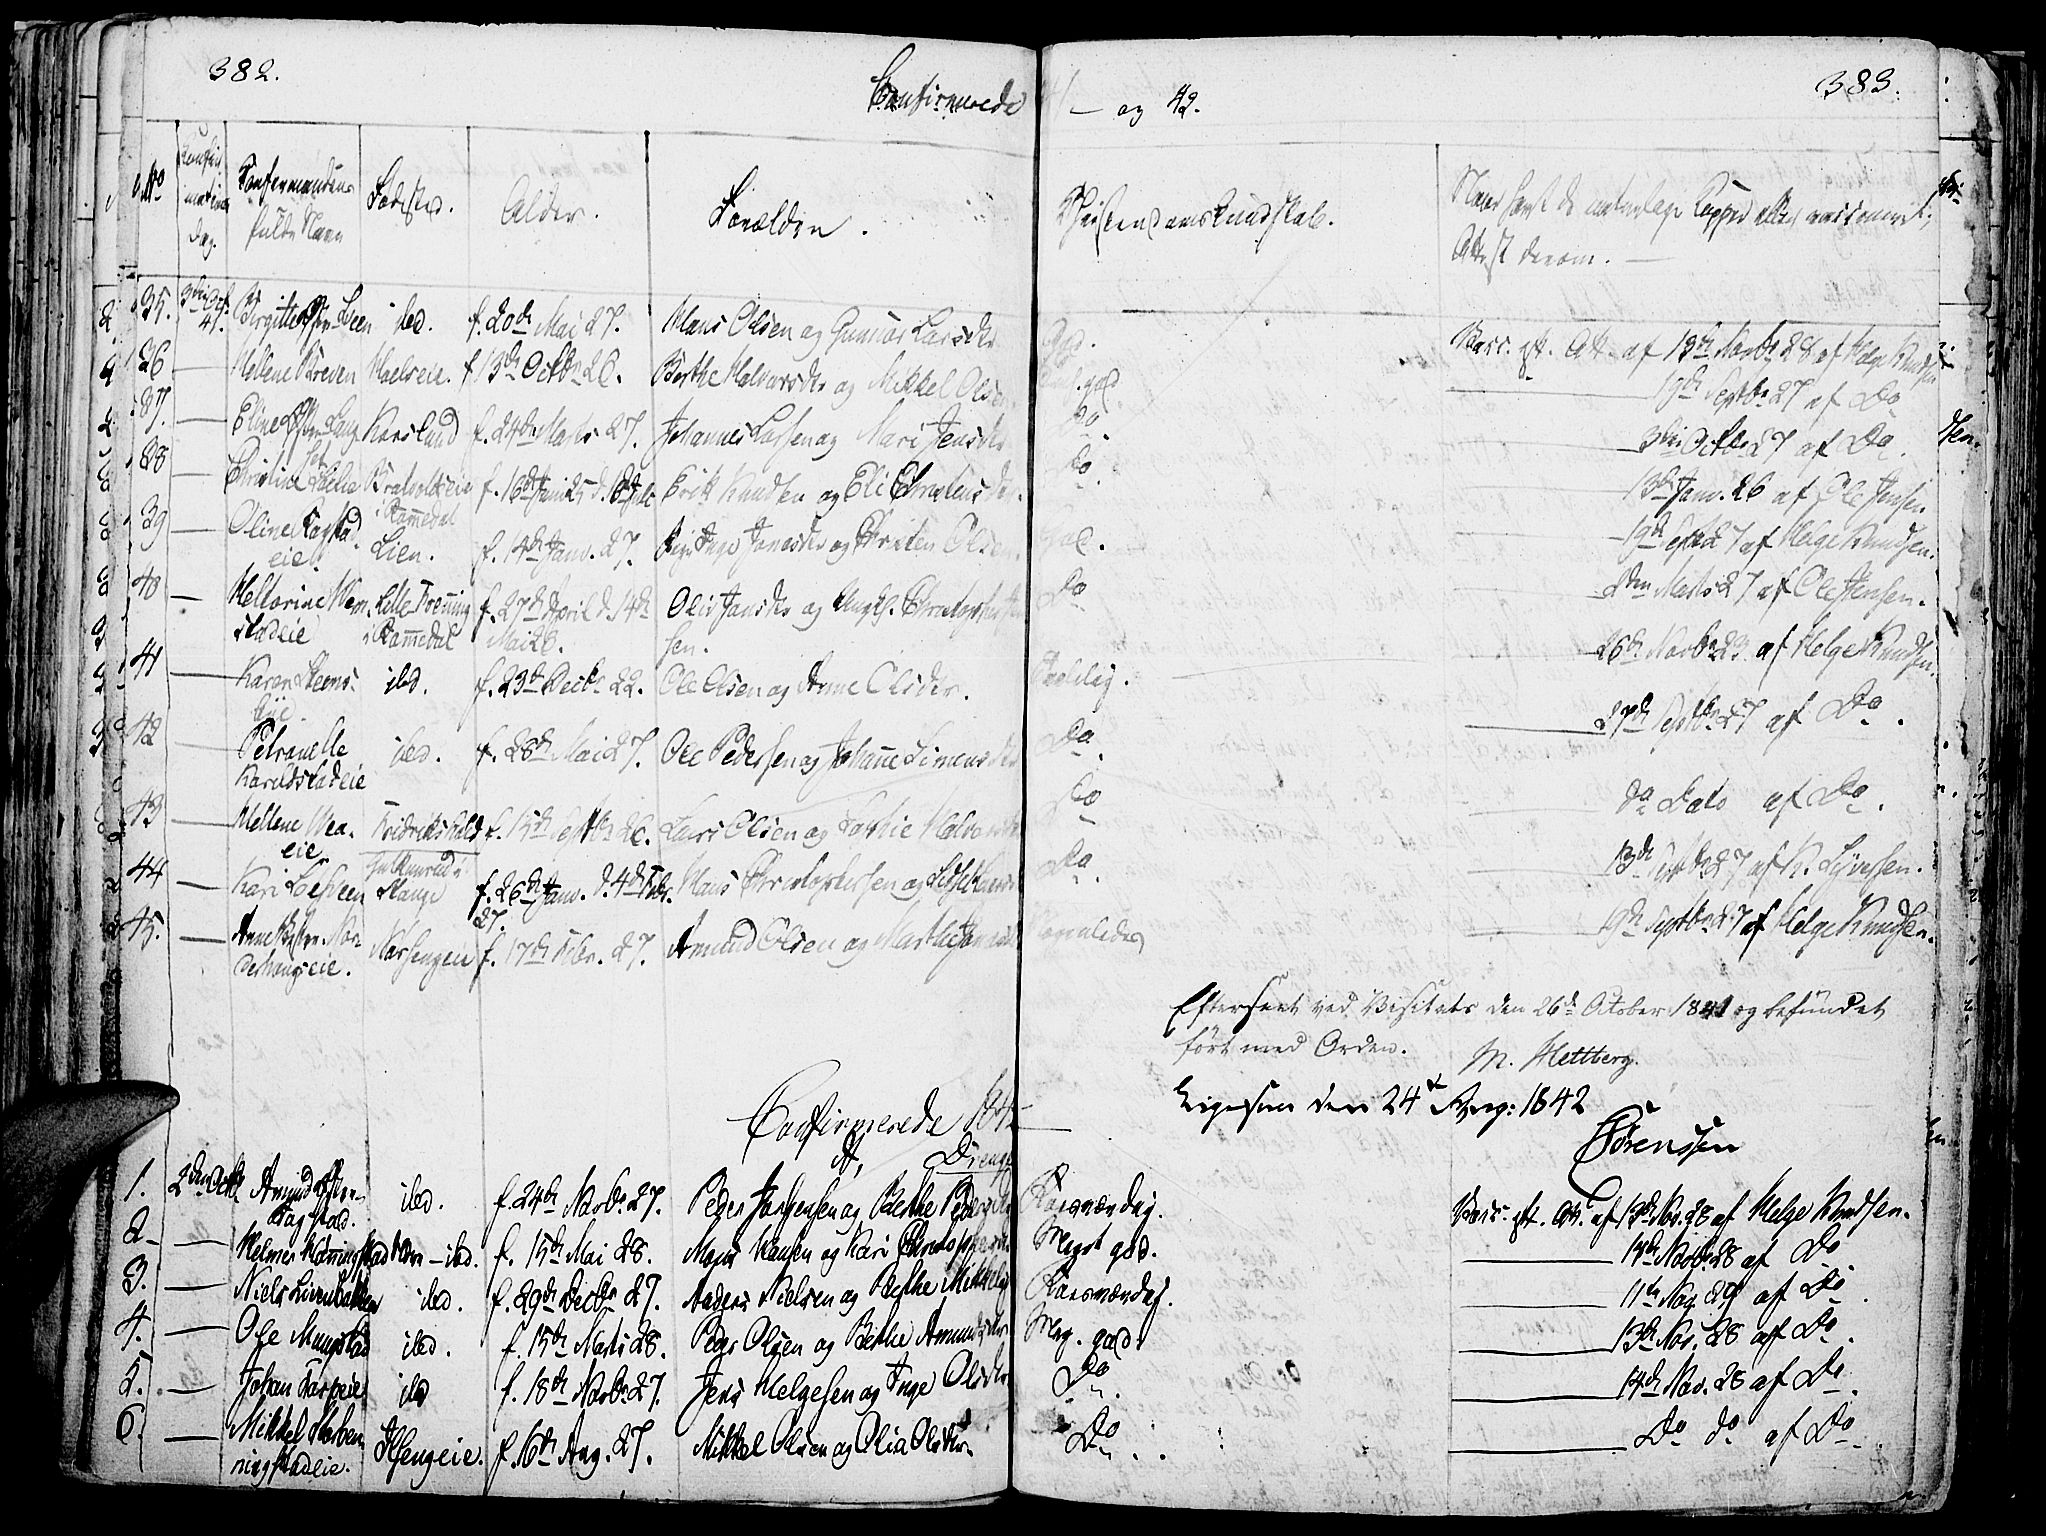 SAH, Løten prestekontor, K/Ka/L0006: Parish register (official) no. 6, 1832-1849, p. 382-383